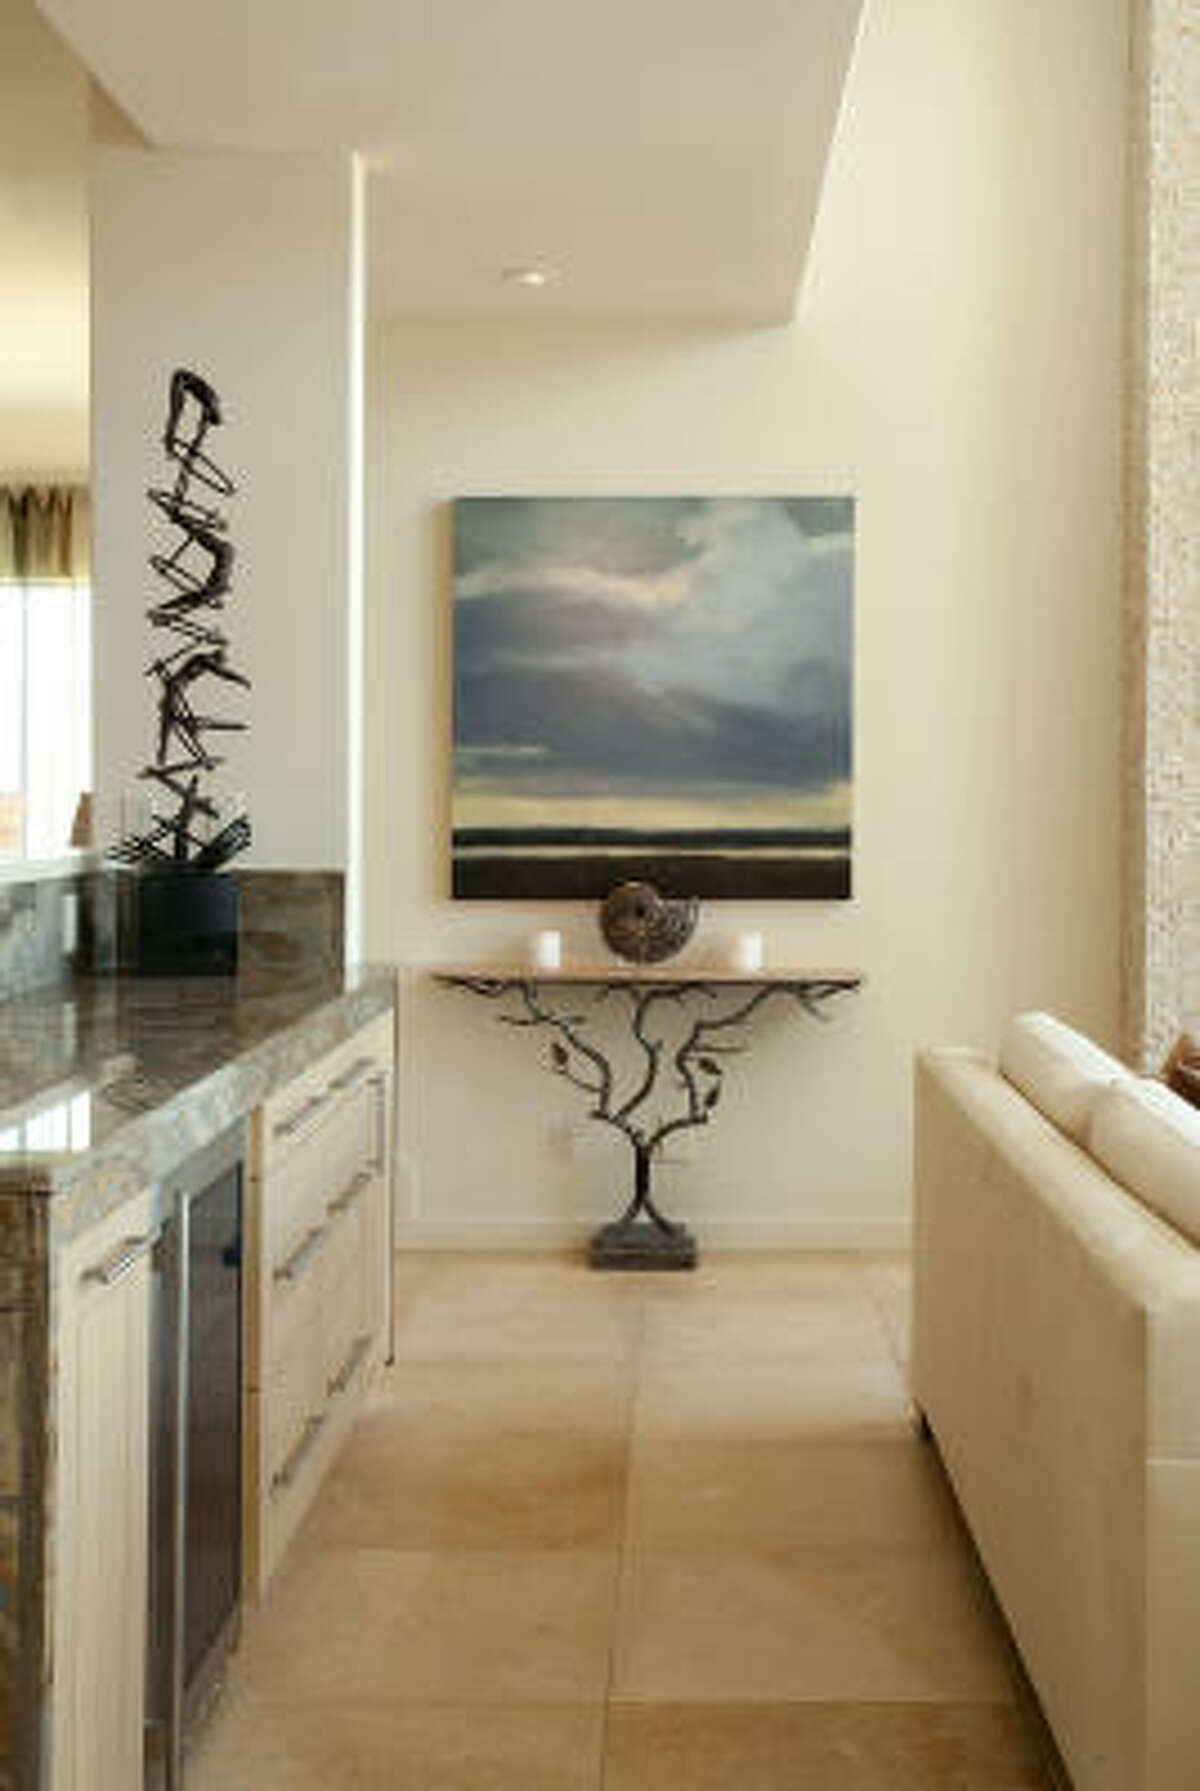 Slovack selected a moody painting from Thornwood Gallery, Gathering Storm by Kim Coulter, to contrast with the brightness of the beach. The custom console table has a patinated steel base and travertine stone top.